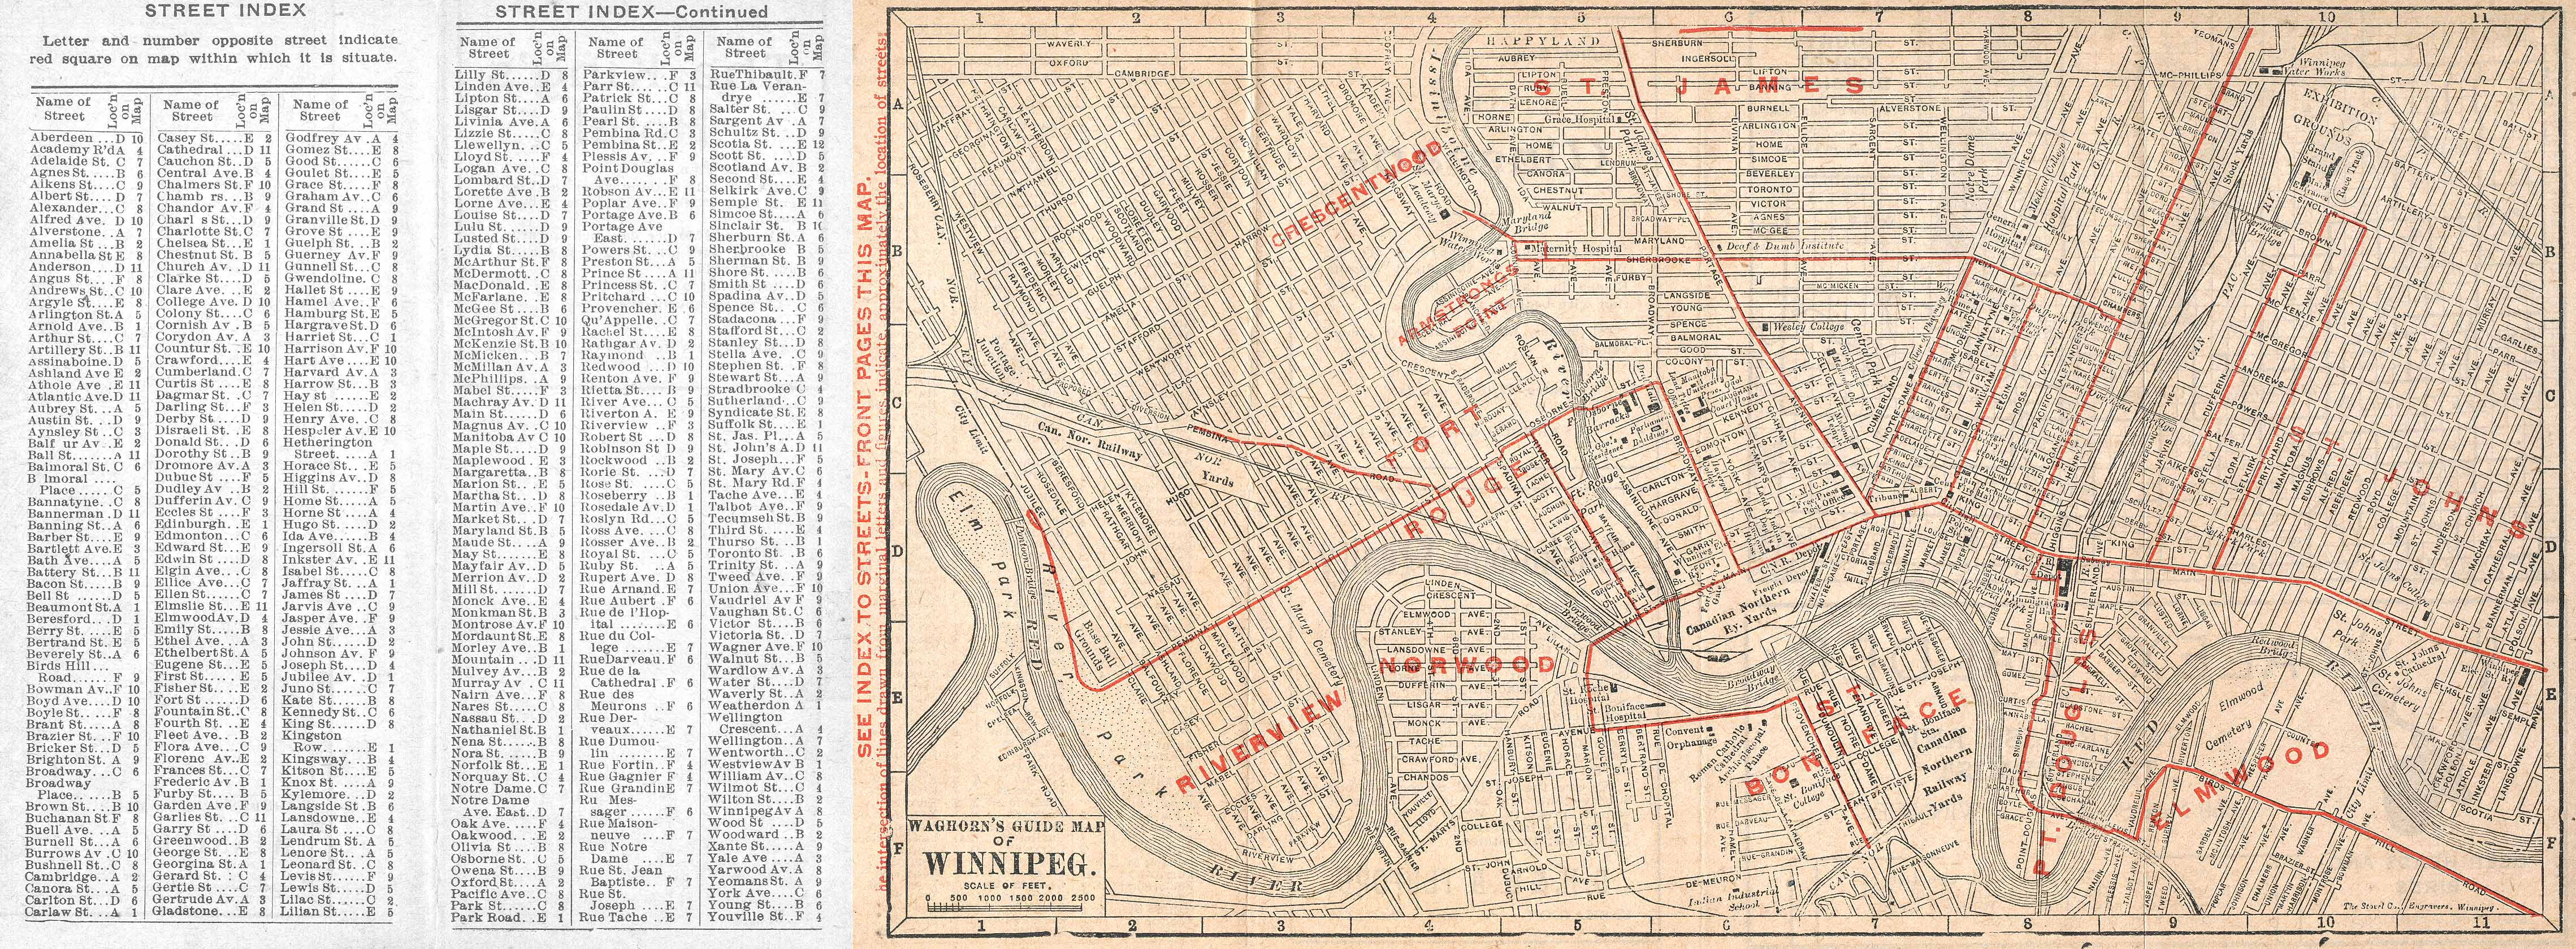 MHS Resources Winnipeg Streets in the 1911 Canada Census